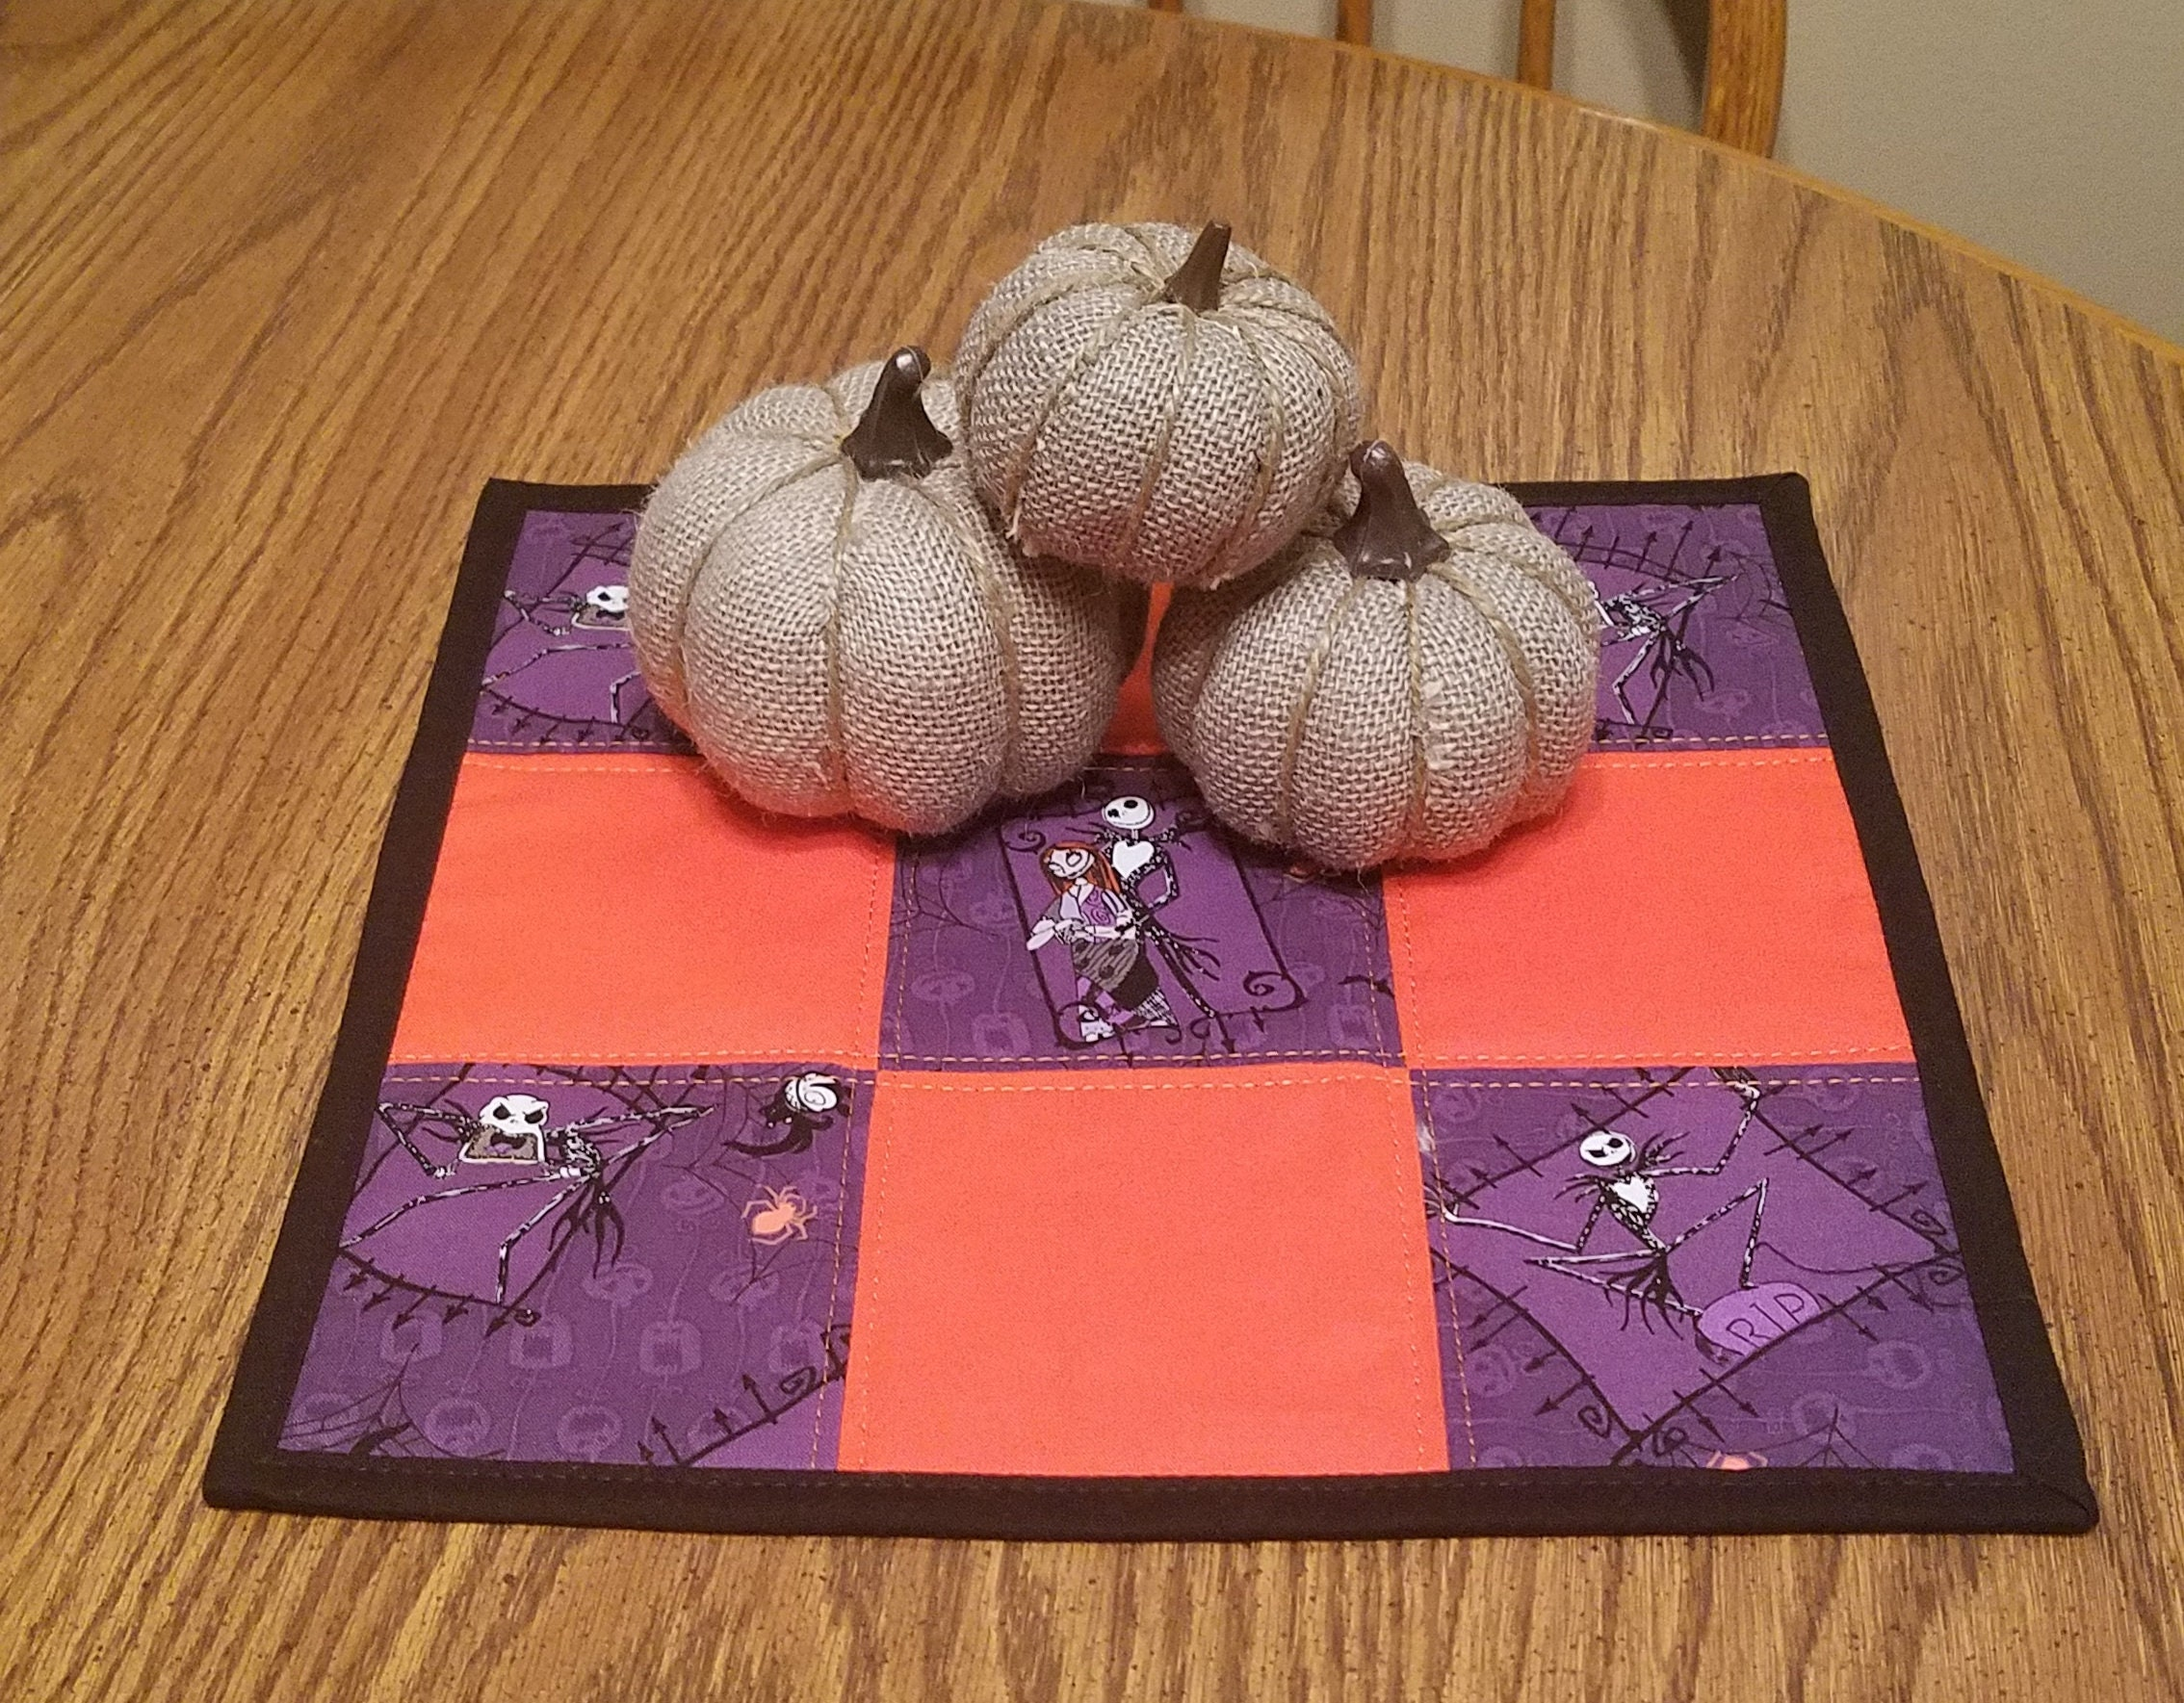 Square Halloween Nightmare Before Christmas Table Topper Centerpiece Candle Mat Purple Black Orange 12 1 2 Inch Home Decor Gift Embroidered